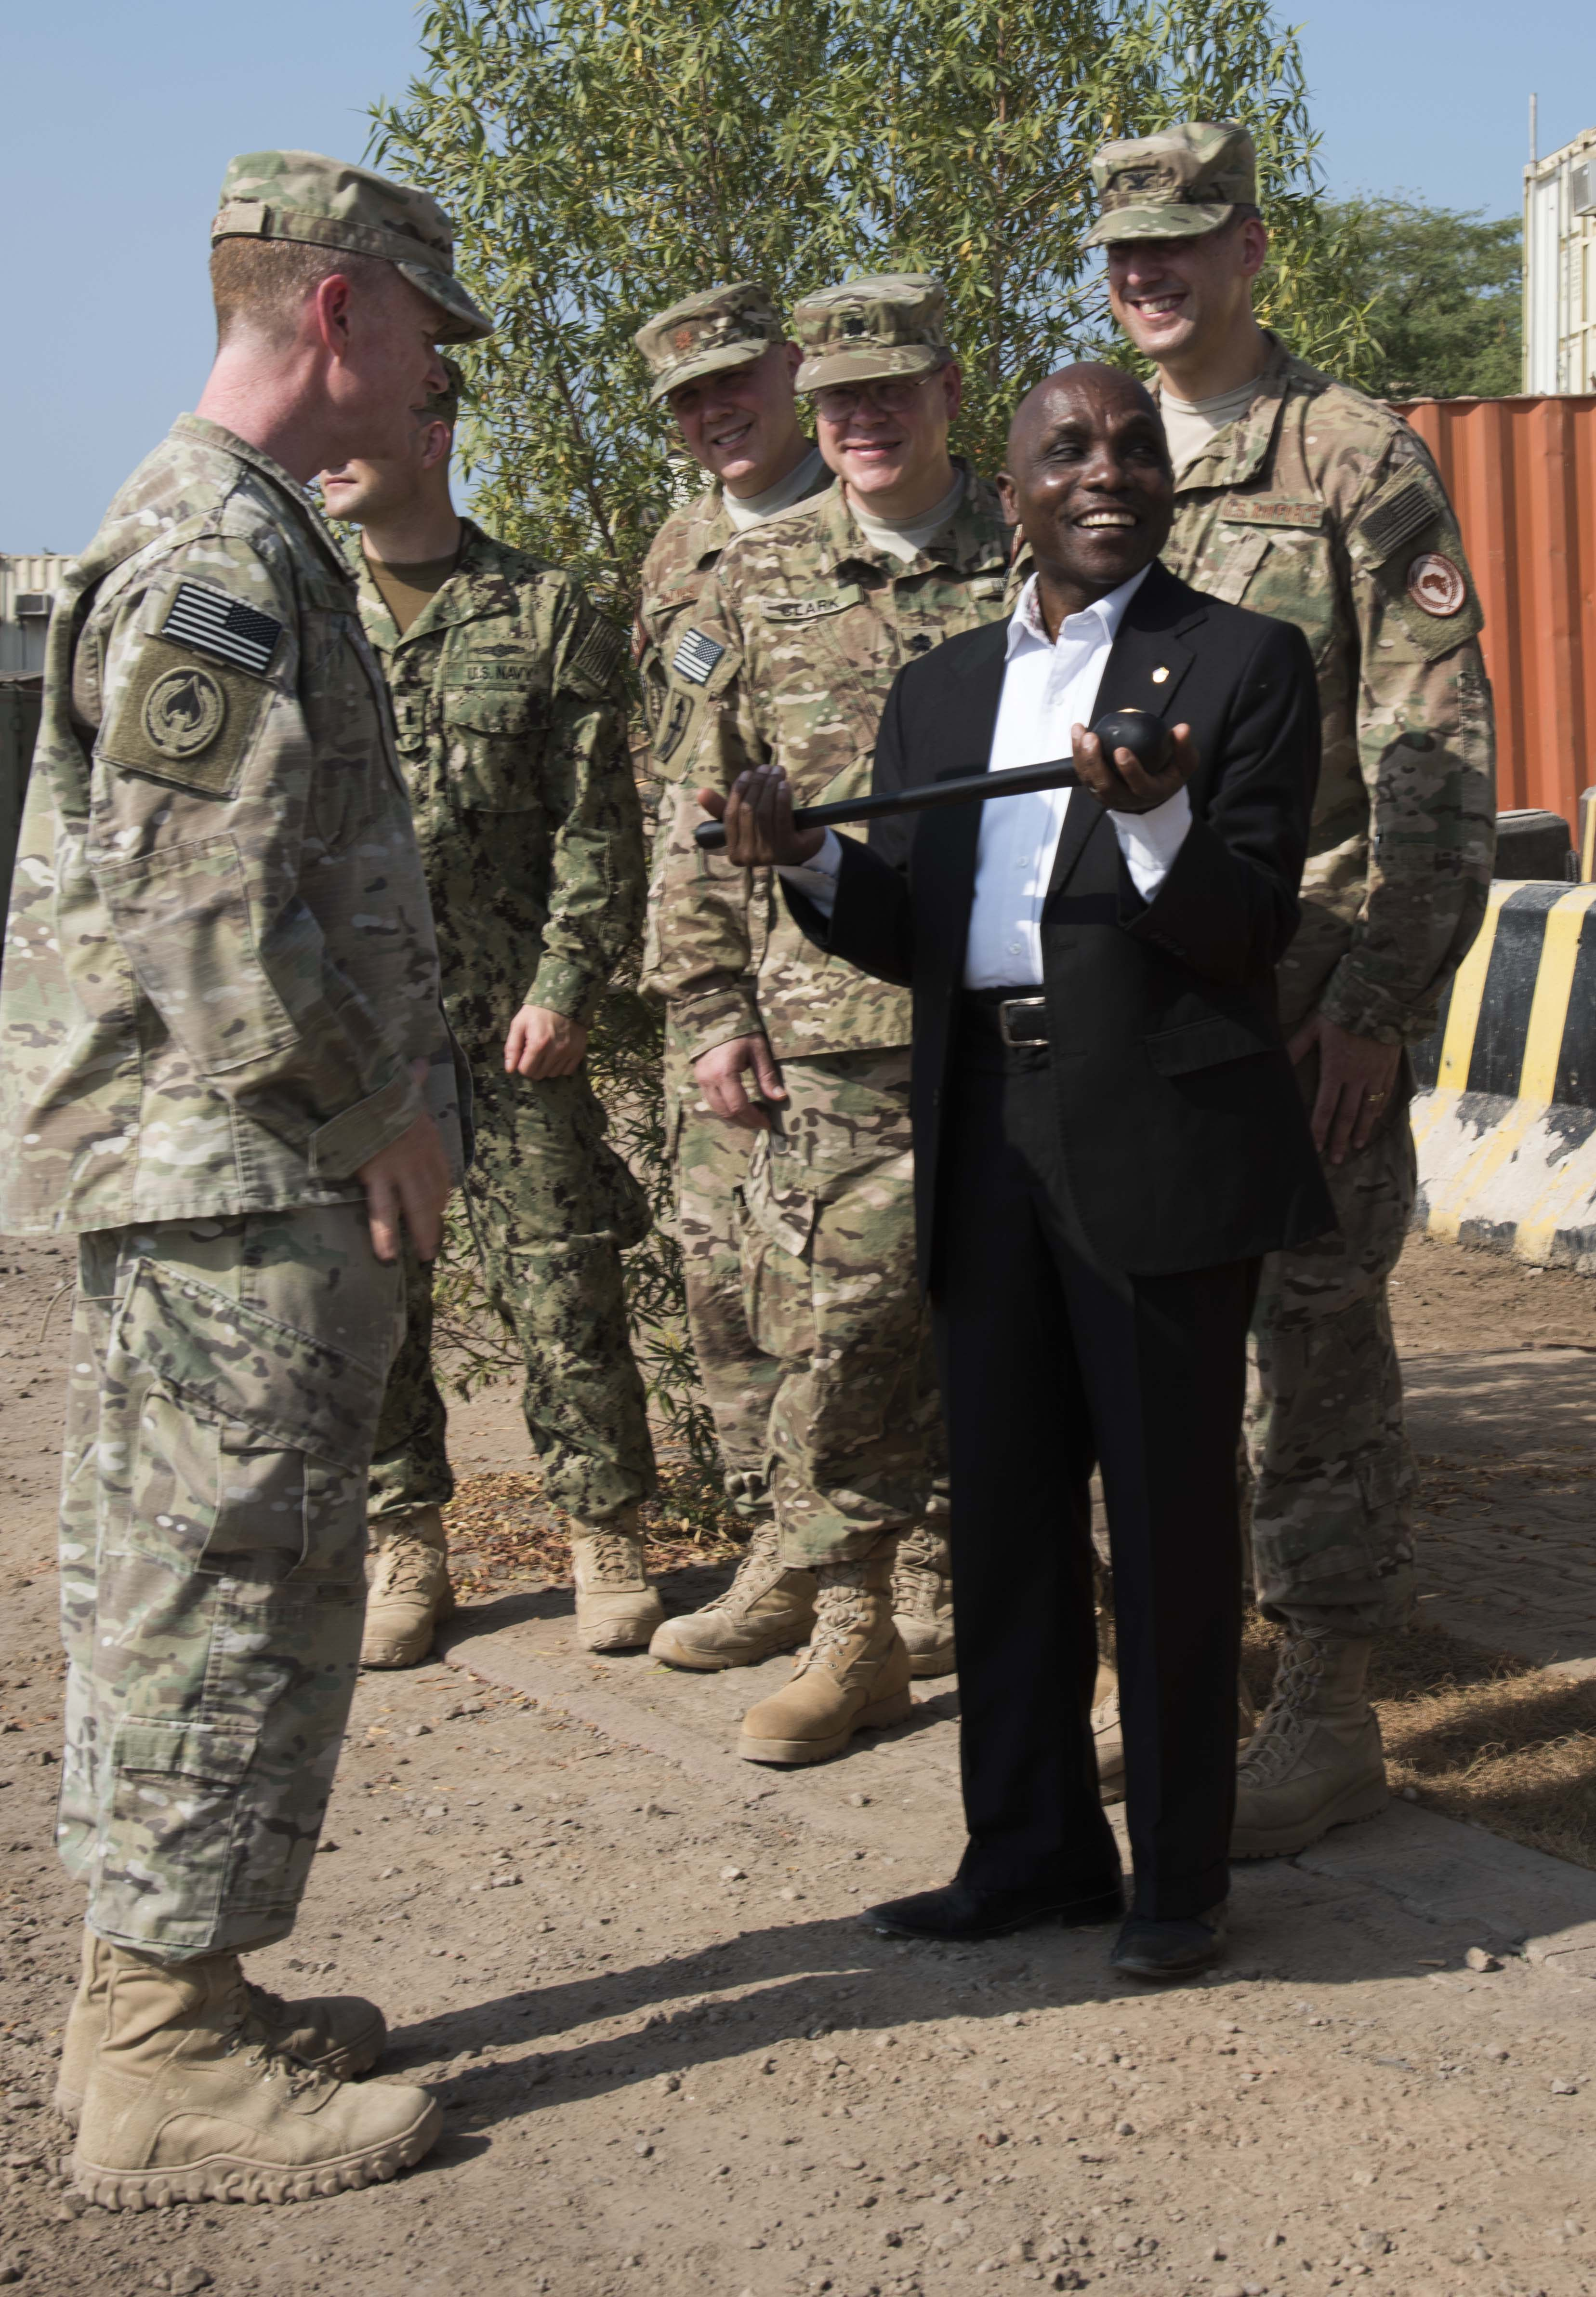 Ambassador Issimail Chanfi, Eastern Africa Standby Force (EASF) director, receives a rungu stick from Brig. Gen. William West, Combined Joint Task Force-Horn of Africa deputy commander, Oct. 27, 2015 at Camp Lemonnier, Djibouti. In the East African Maasai culture, the rungu is an important emblem of warrior status. (U.S. Air Force photo by Staff Sgt. Victoria Sneed)